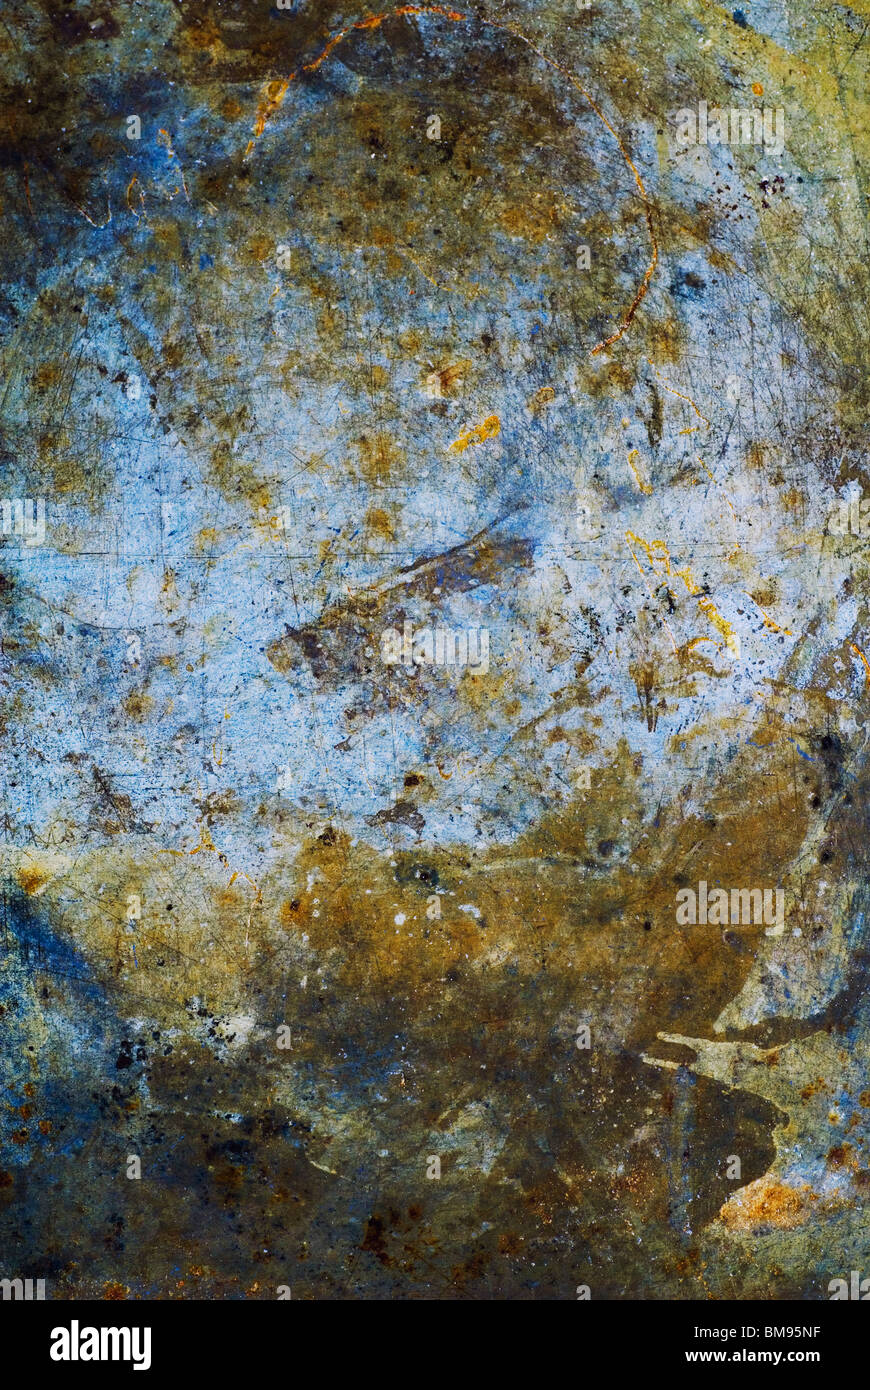 Grungy metal texture - Stock Image